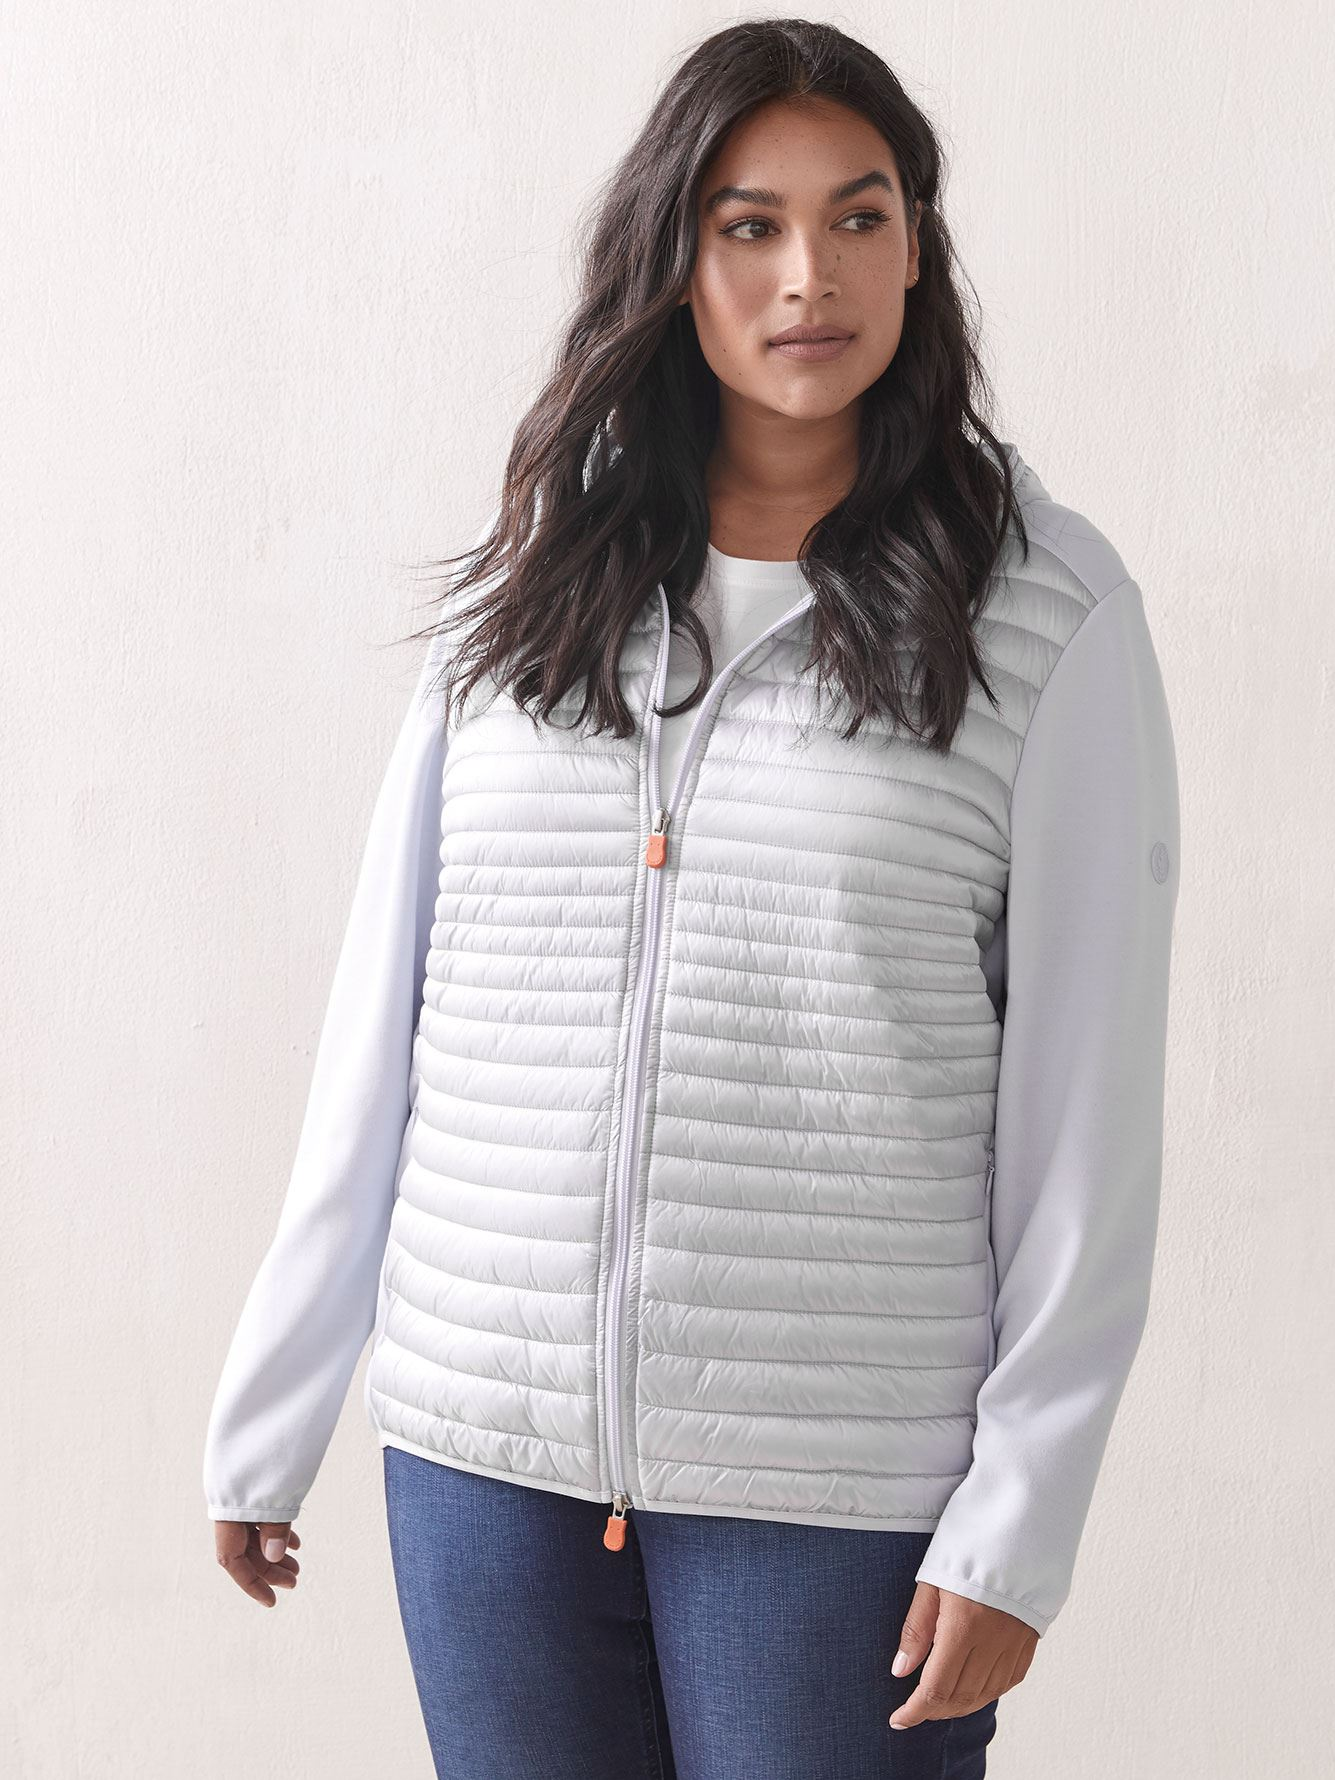 Knit-Sleeve Packable Jacket - Save The Duck 4